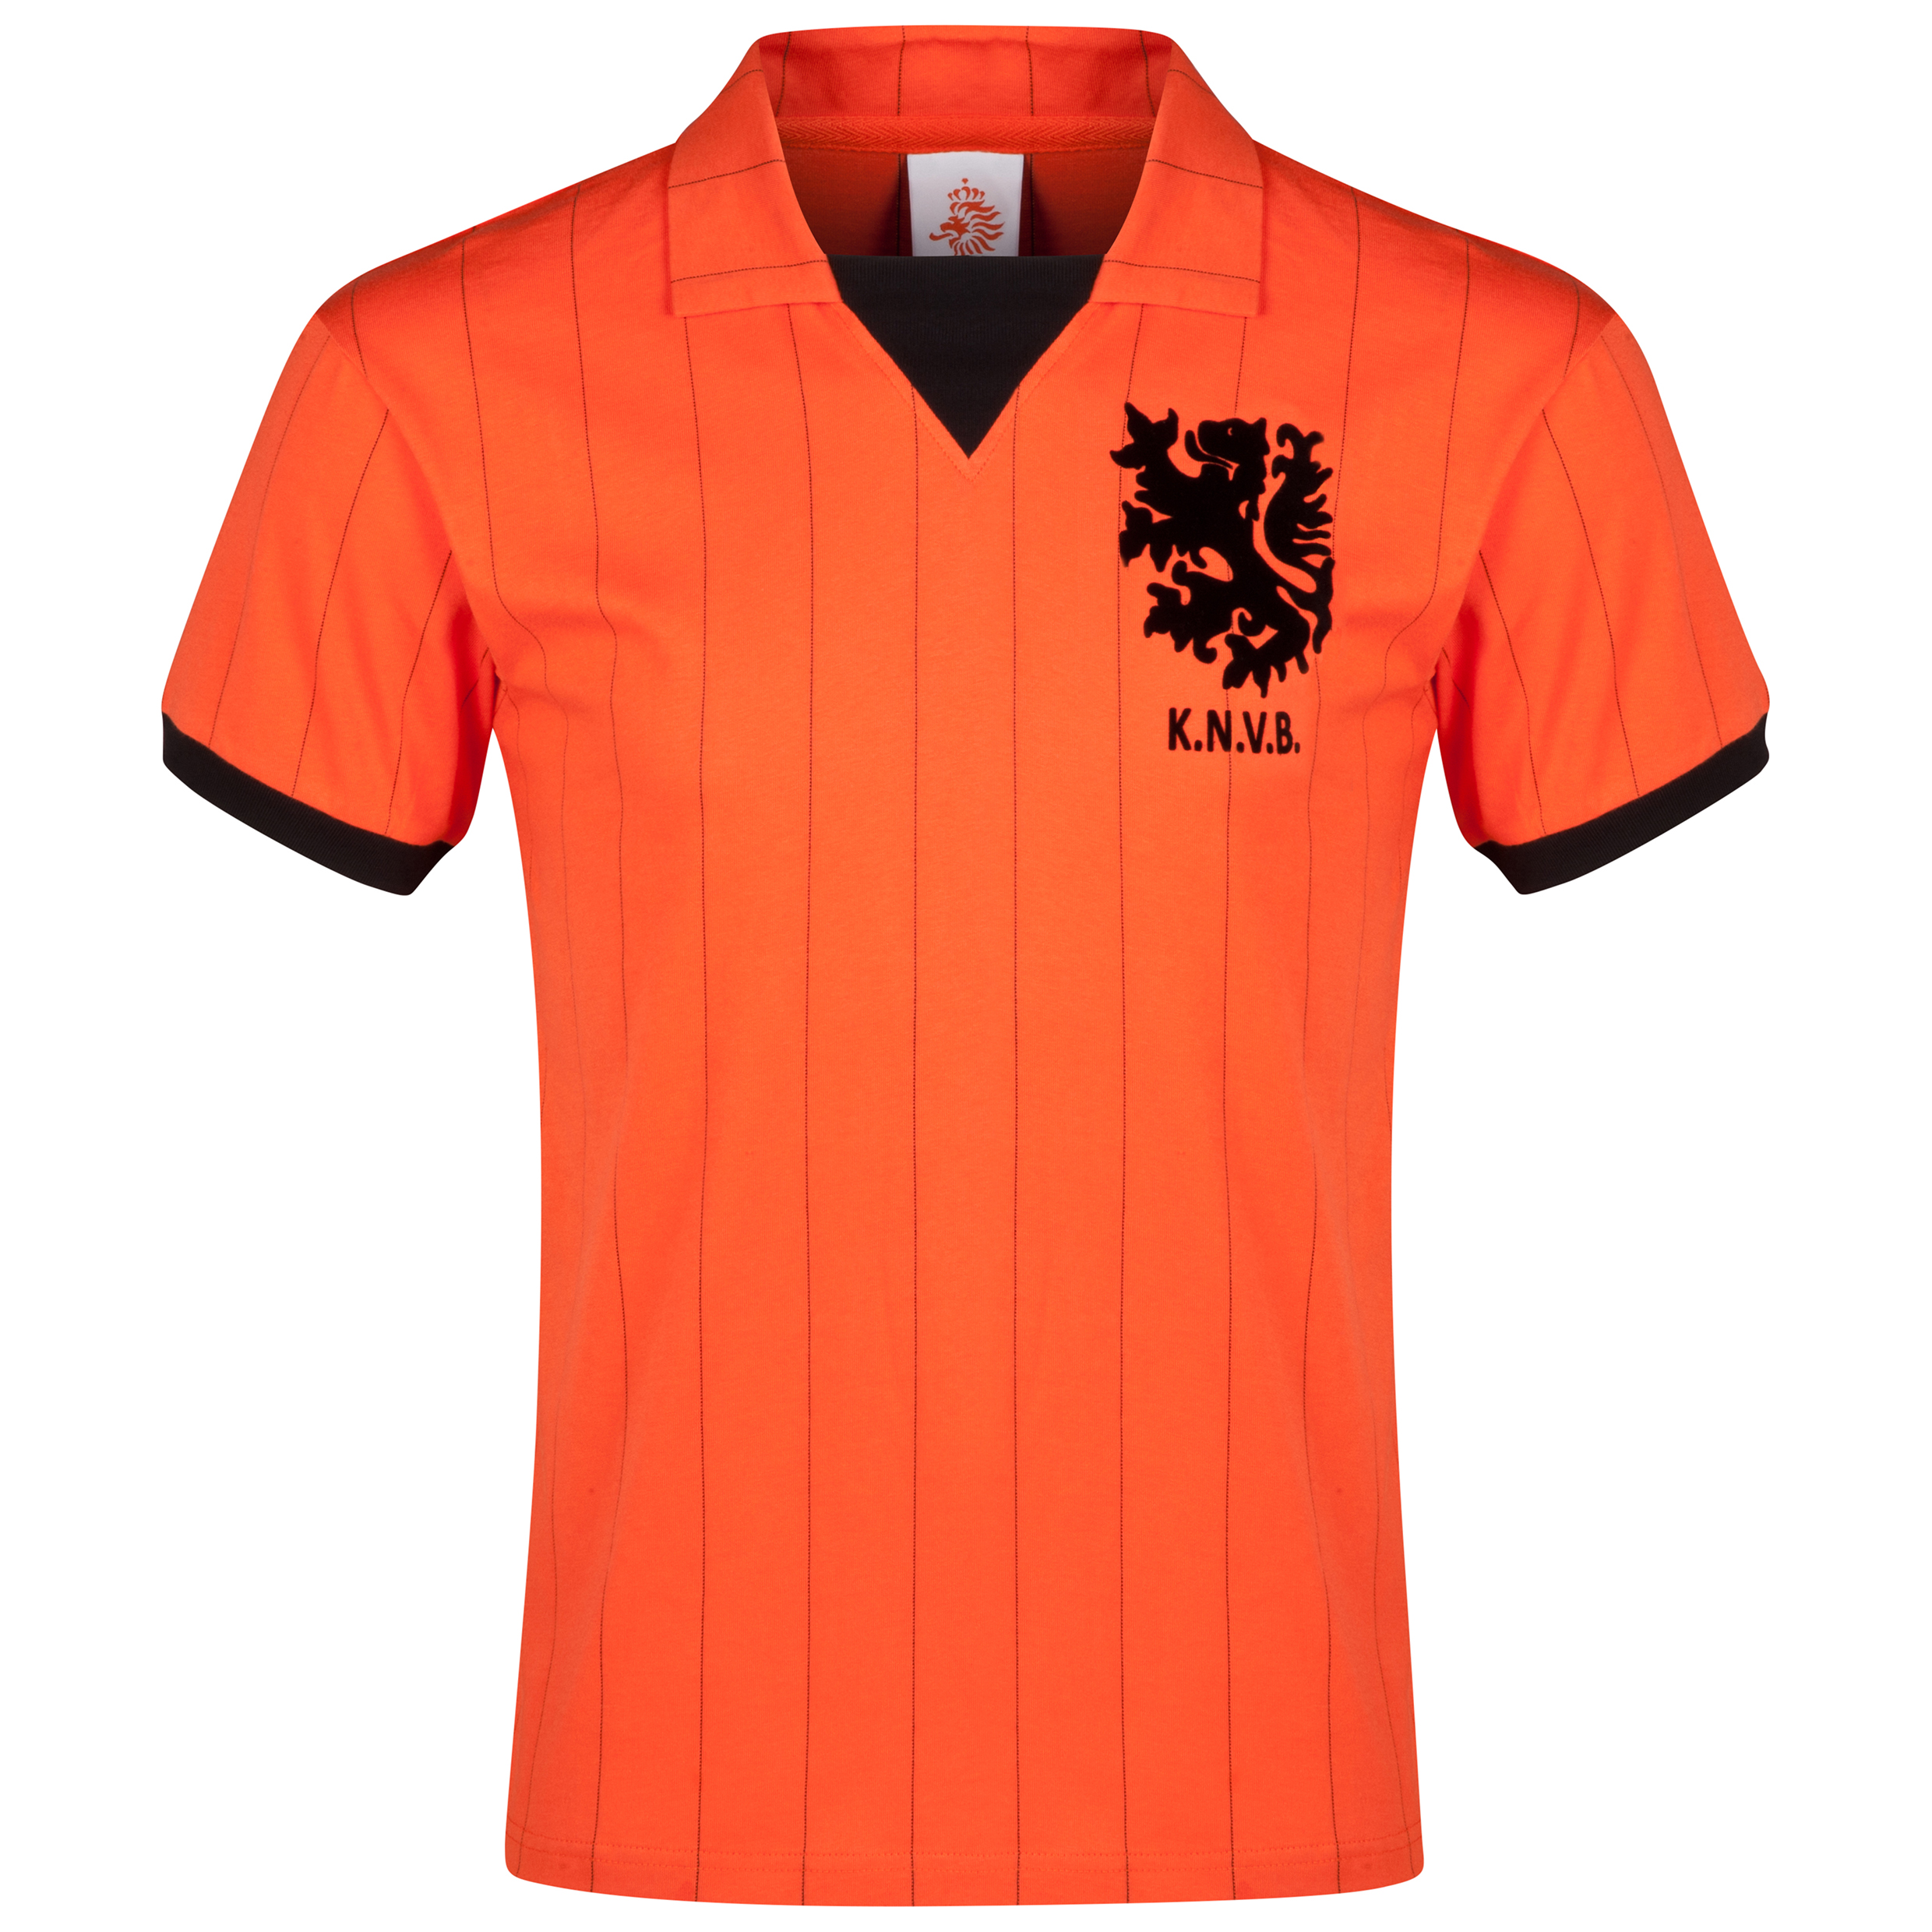 Holland 1983 Shirt